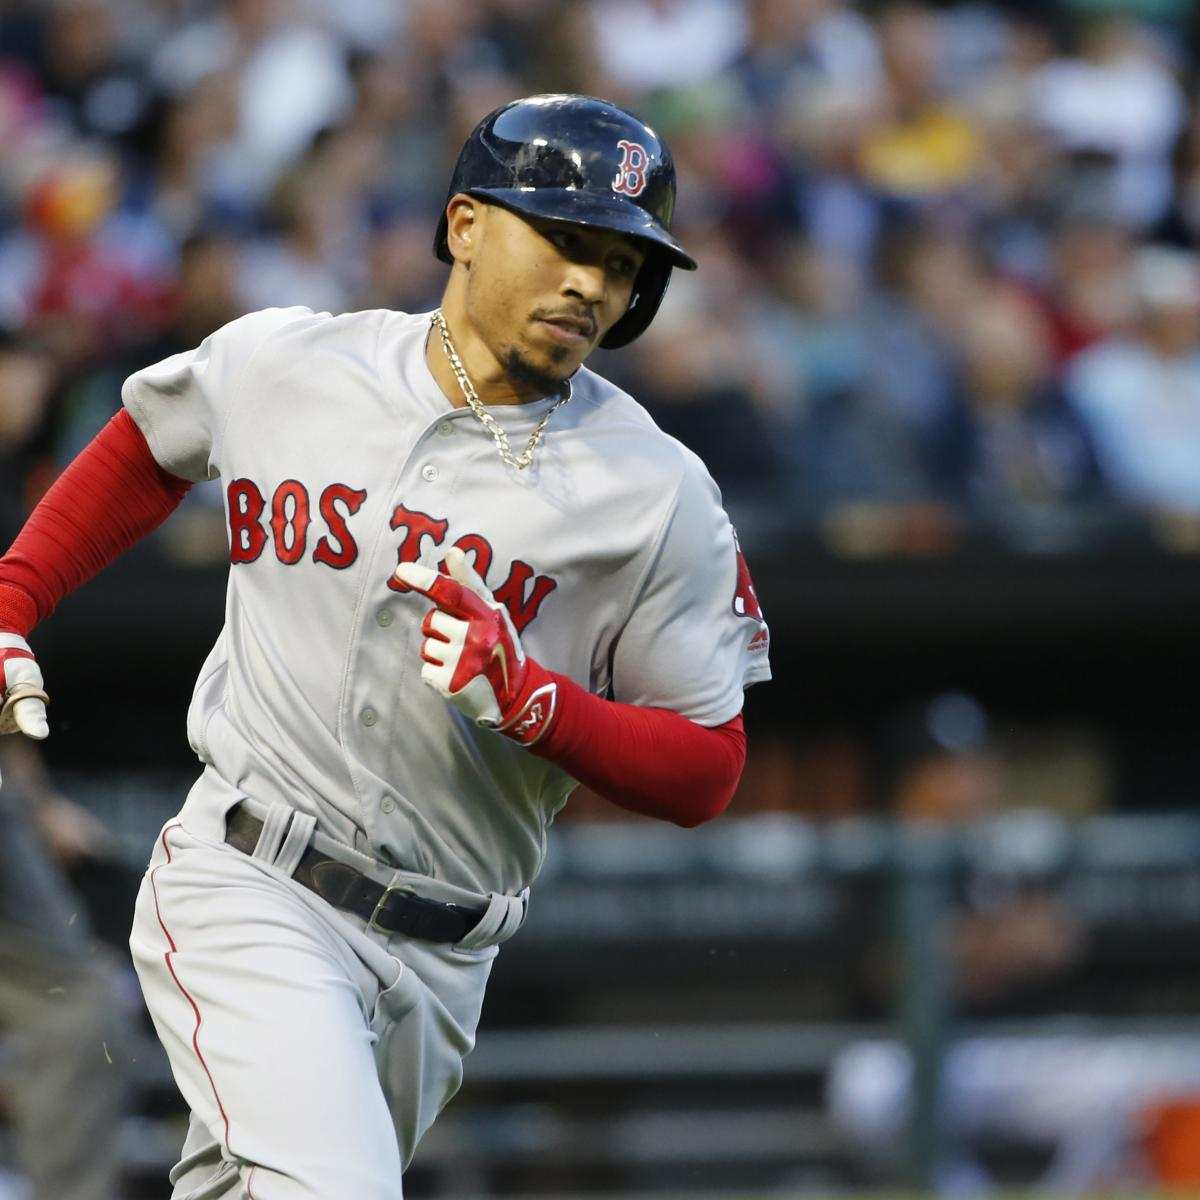 Report: Mookie Betts, David Price Traded From Red Sox To Dodgers In Blockbuster photo